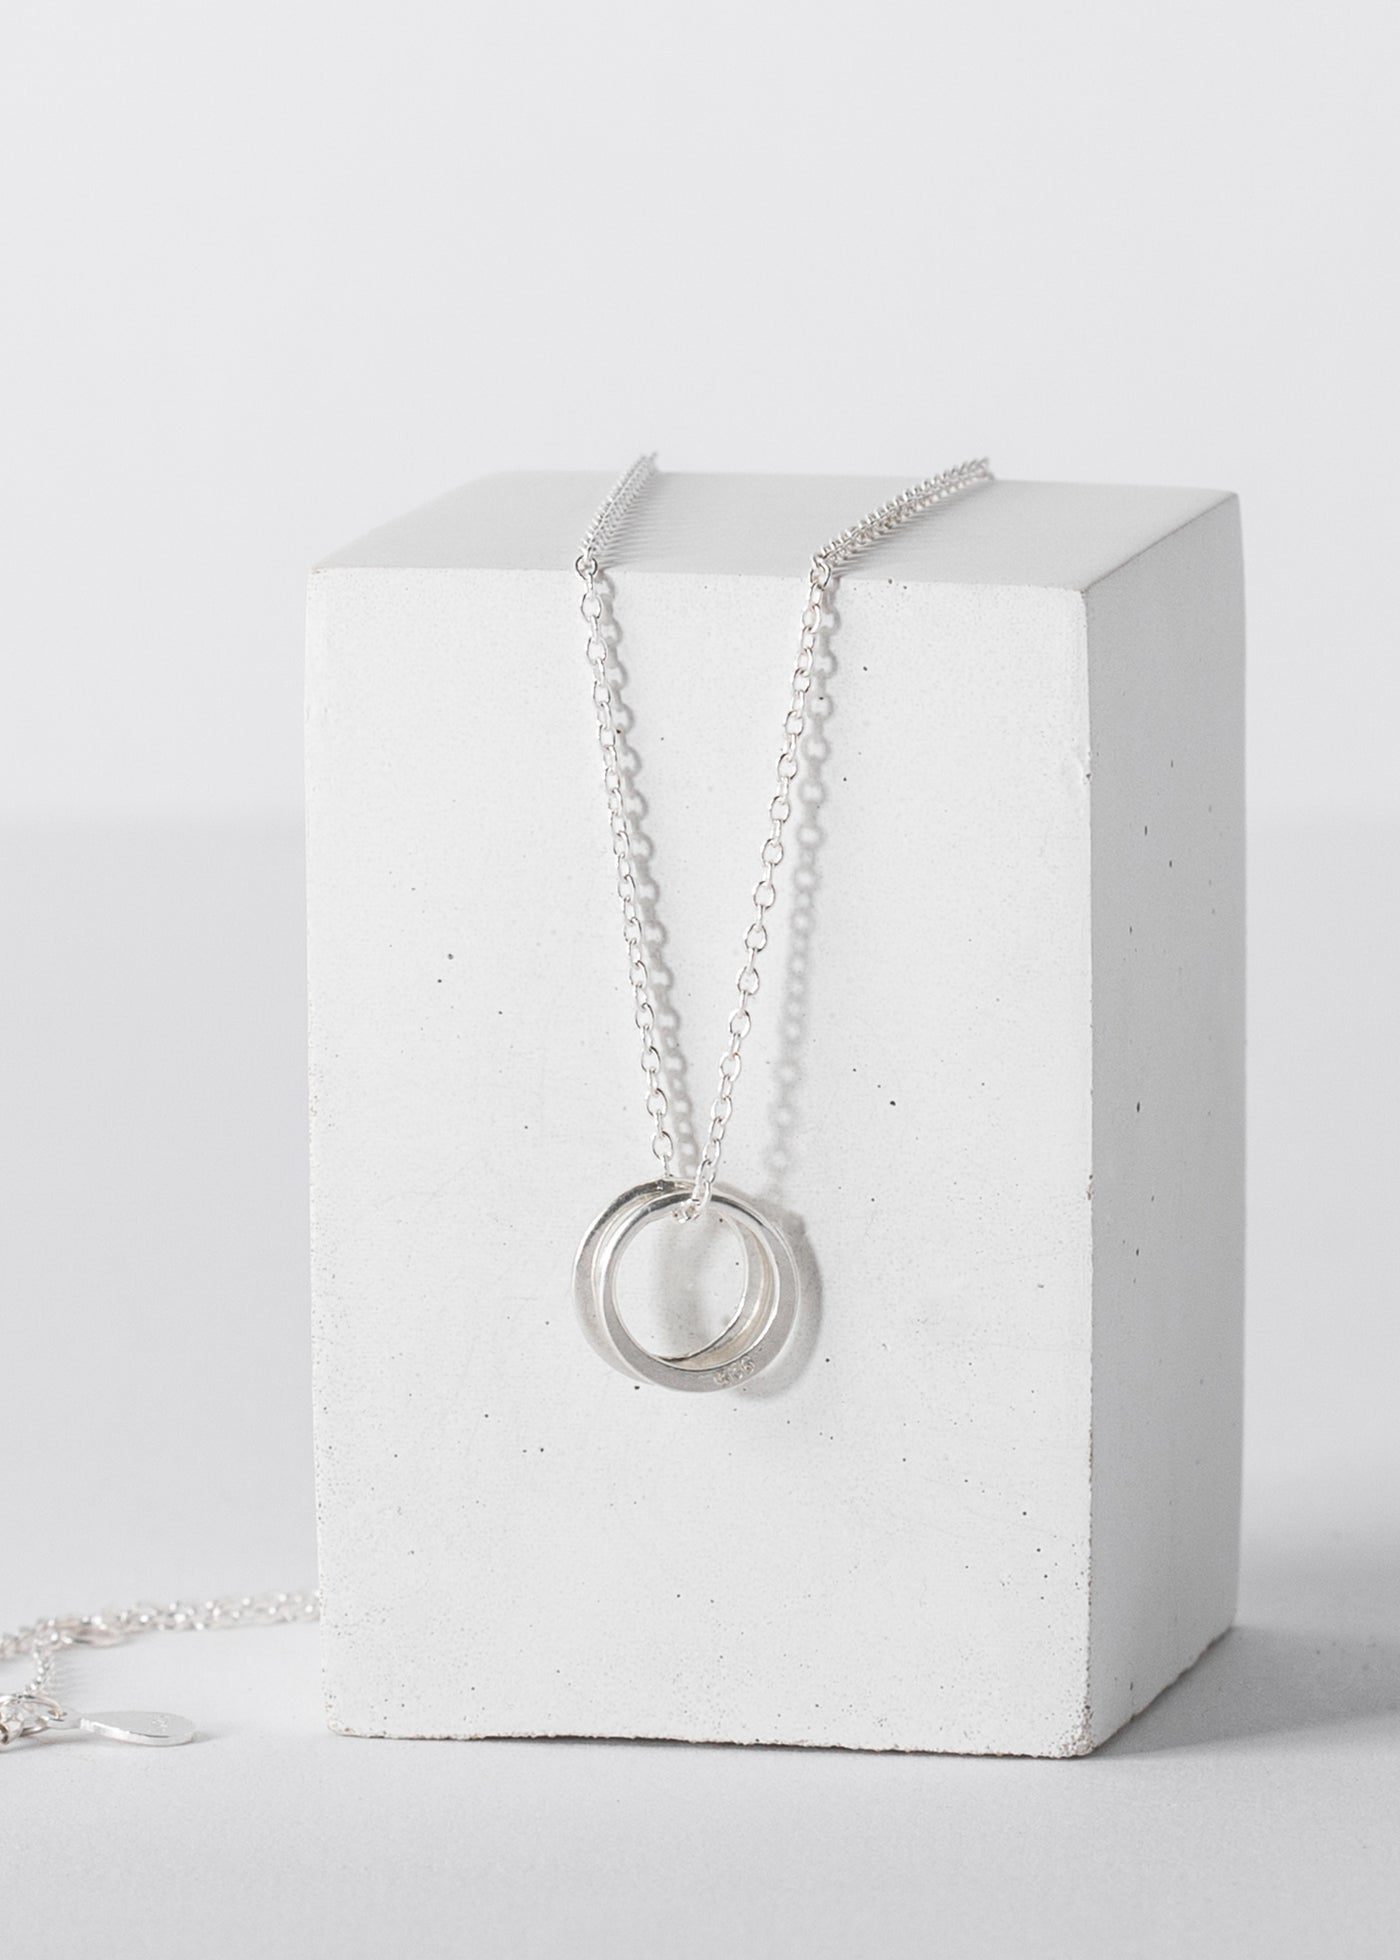 Miracle Balm & Infinity Necklace Gift Set